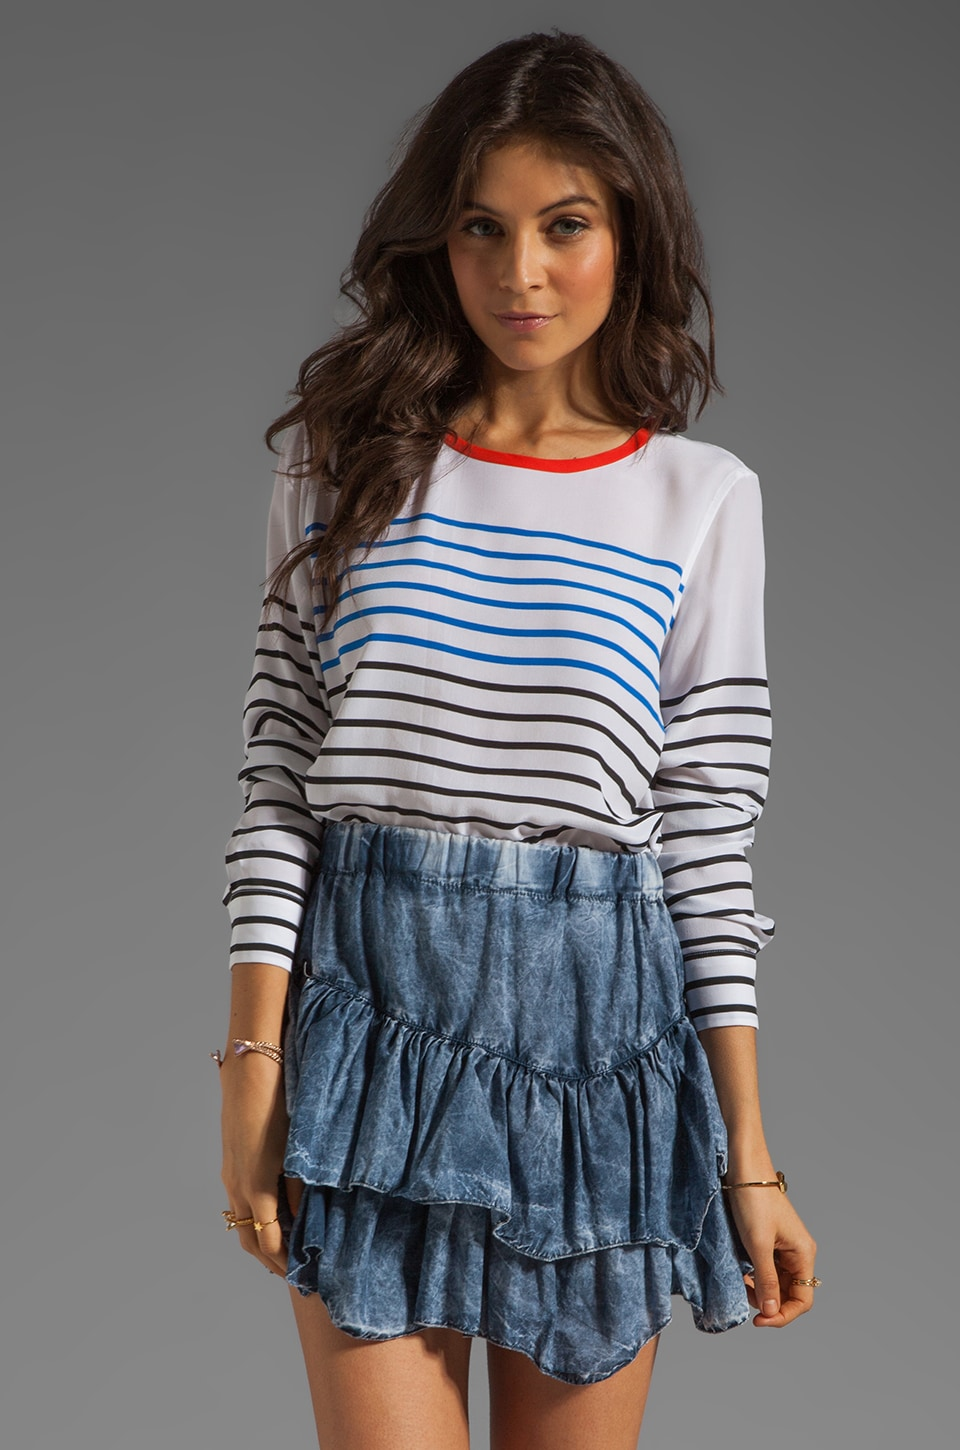 Equipment North Sails Stripe Liam Tee in Bright White Multi